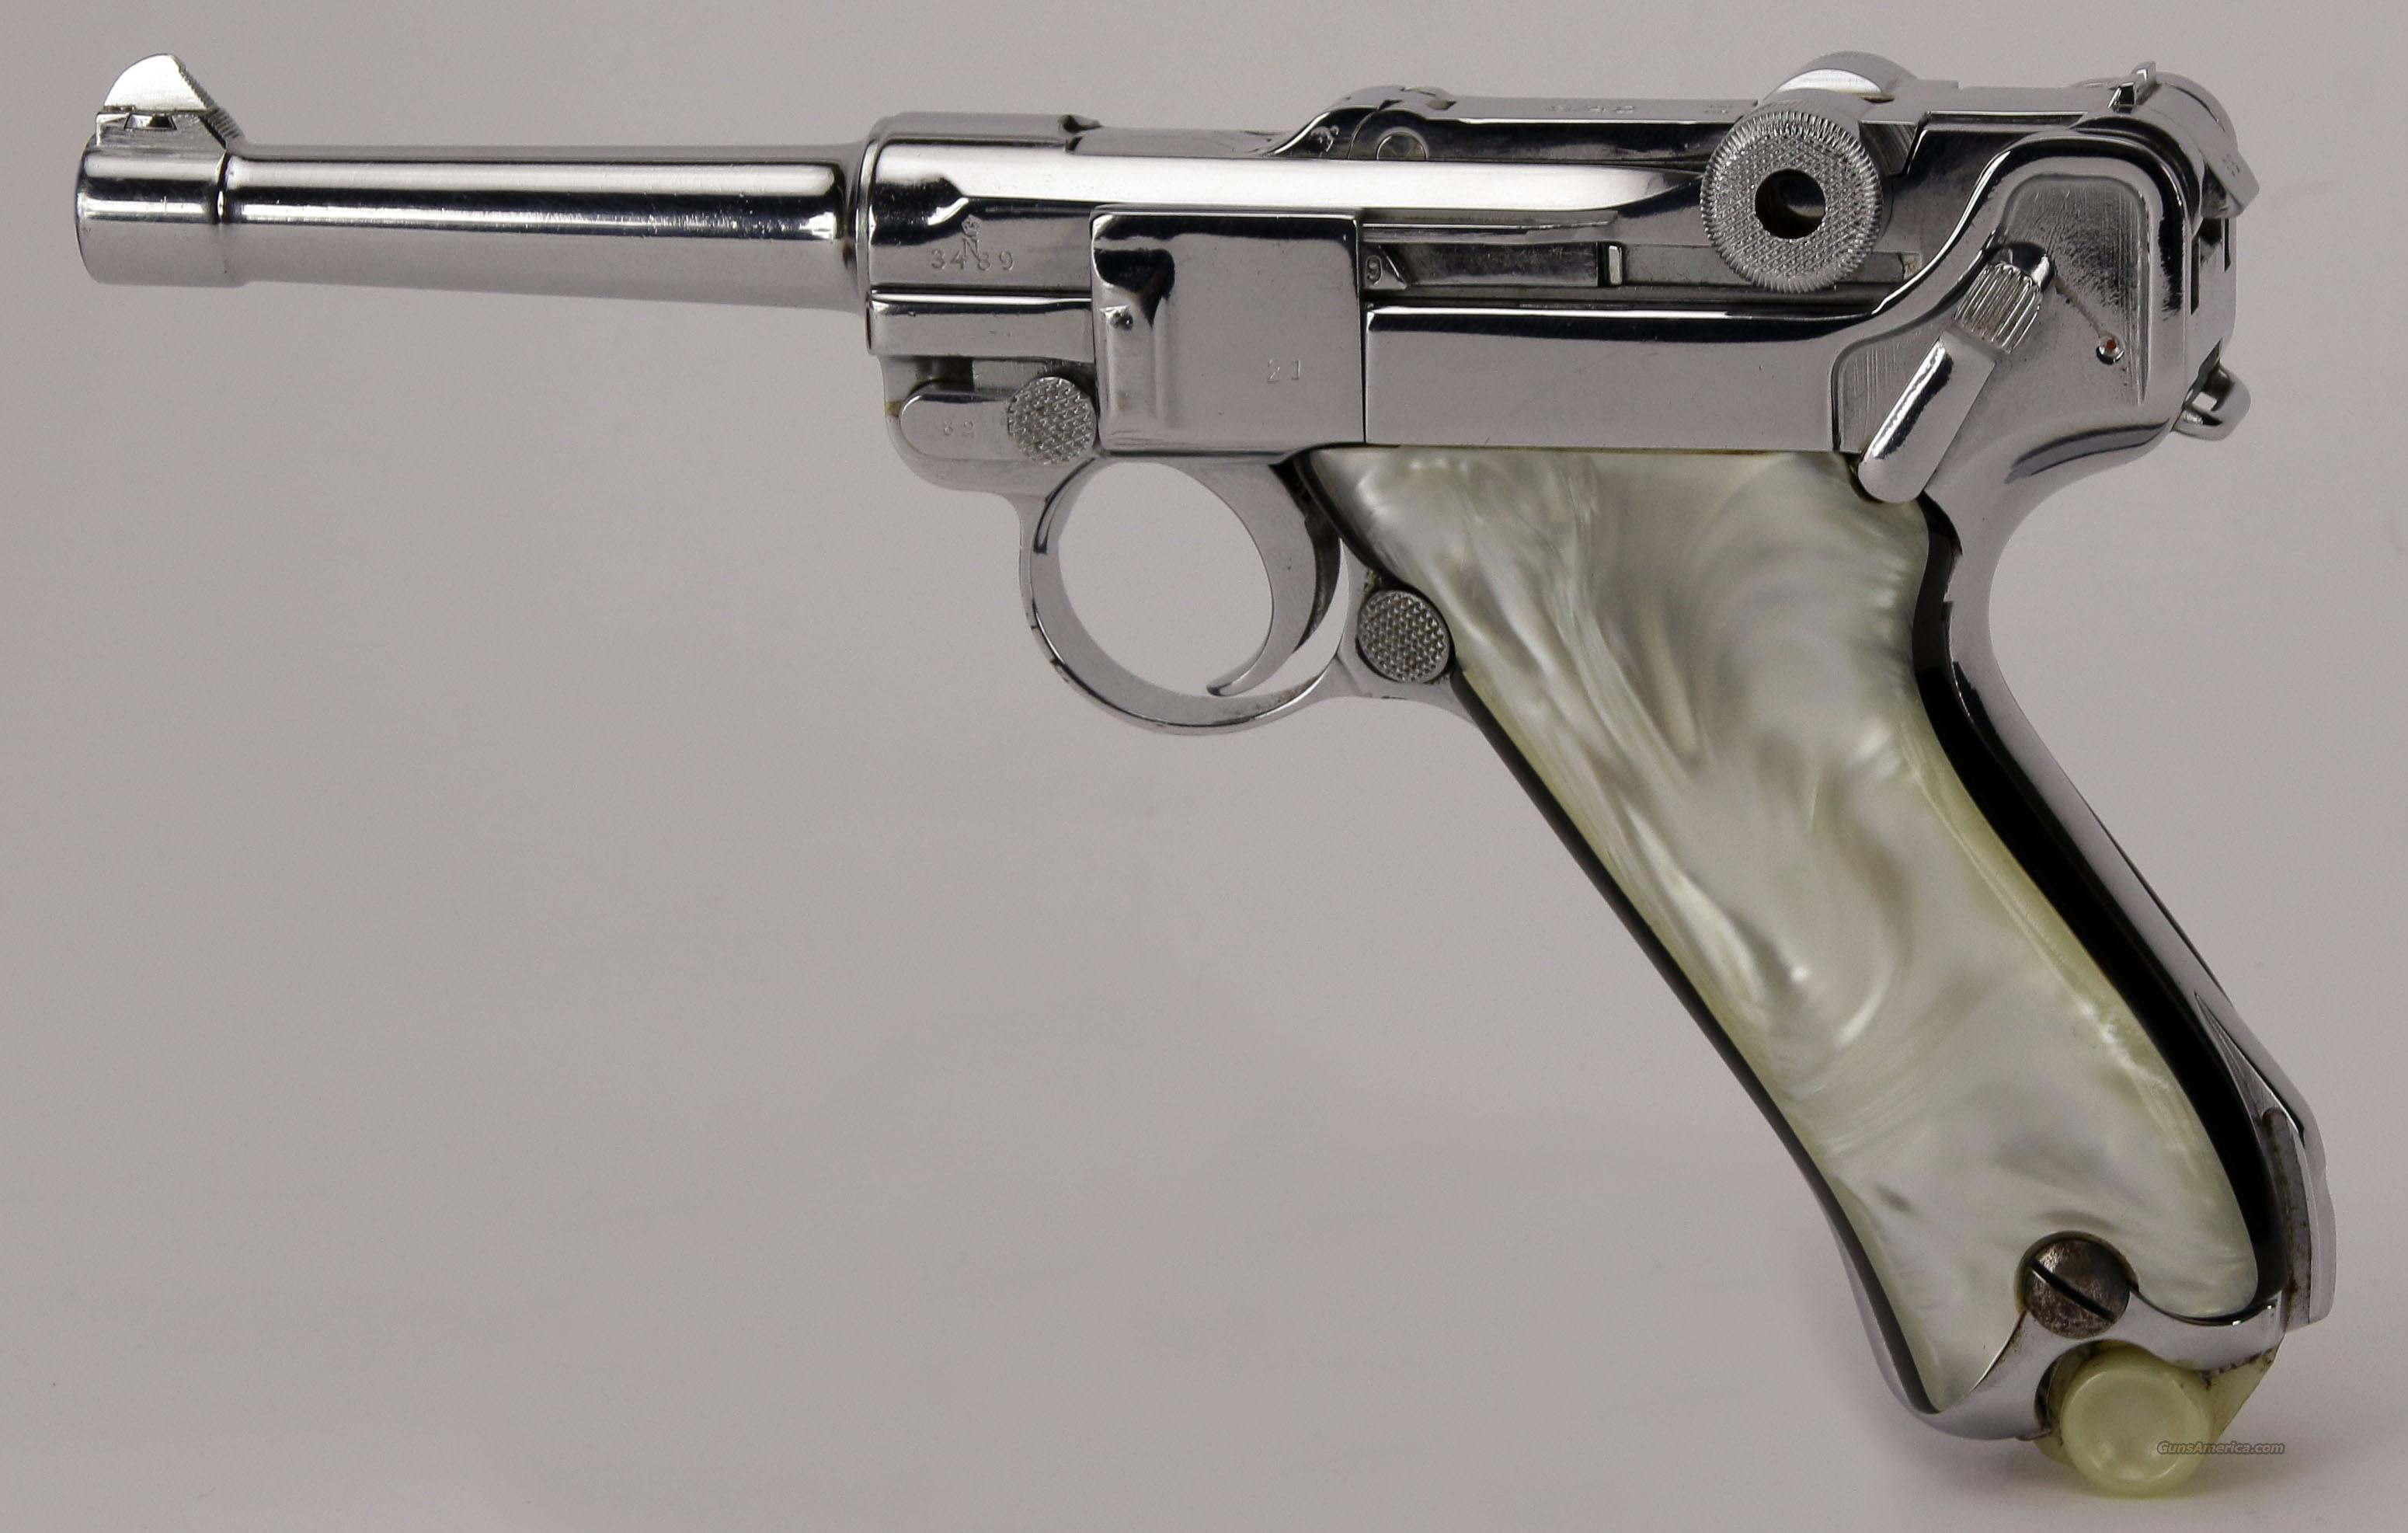 Amazing Luger Pistol Pictures & Backgrounds